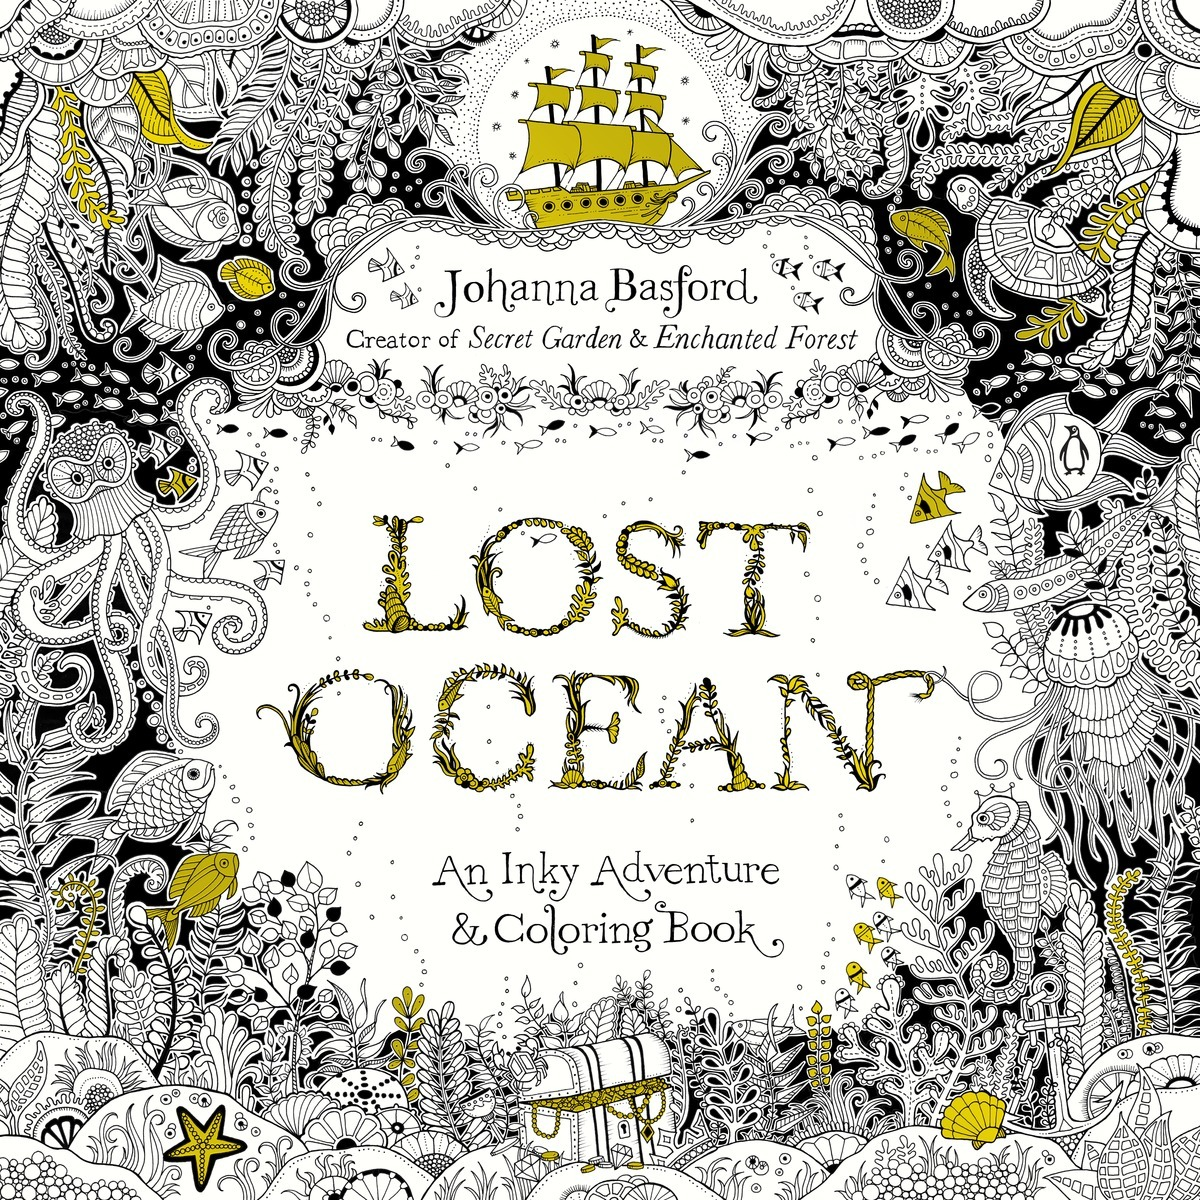 The secret garden coloring book barnes and noble